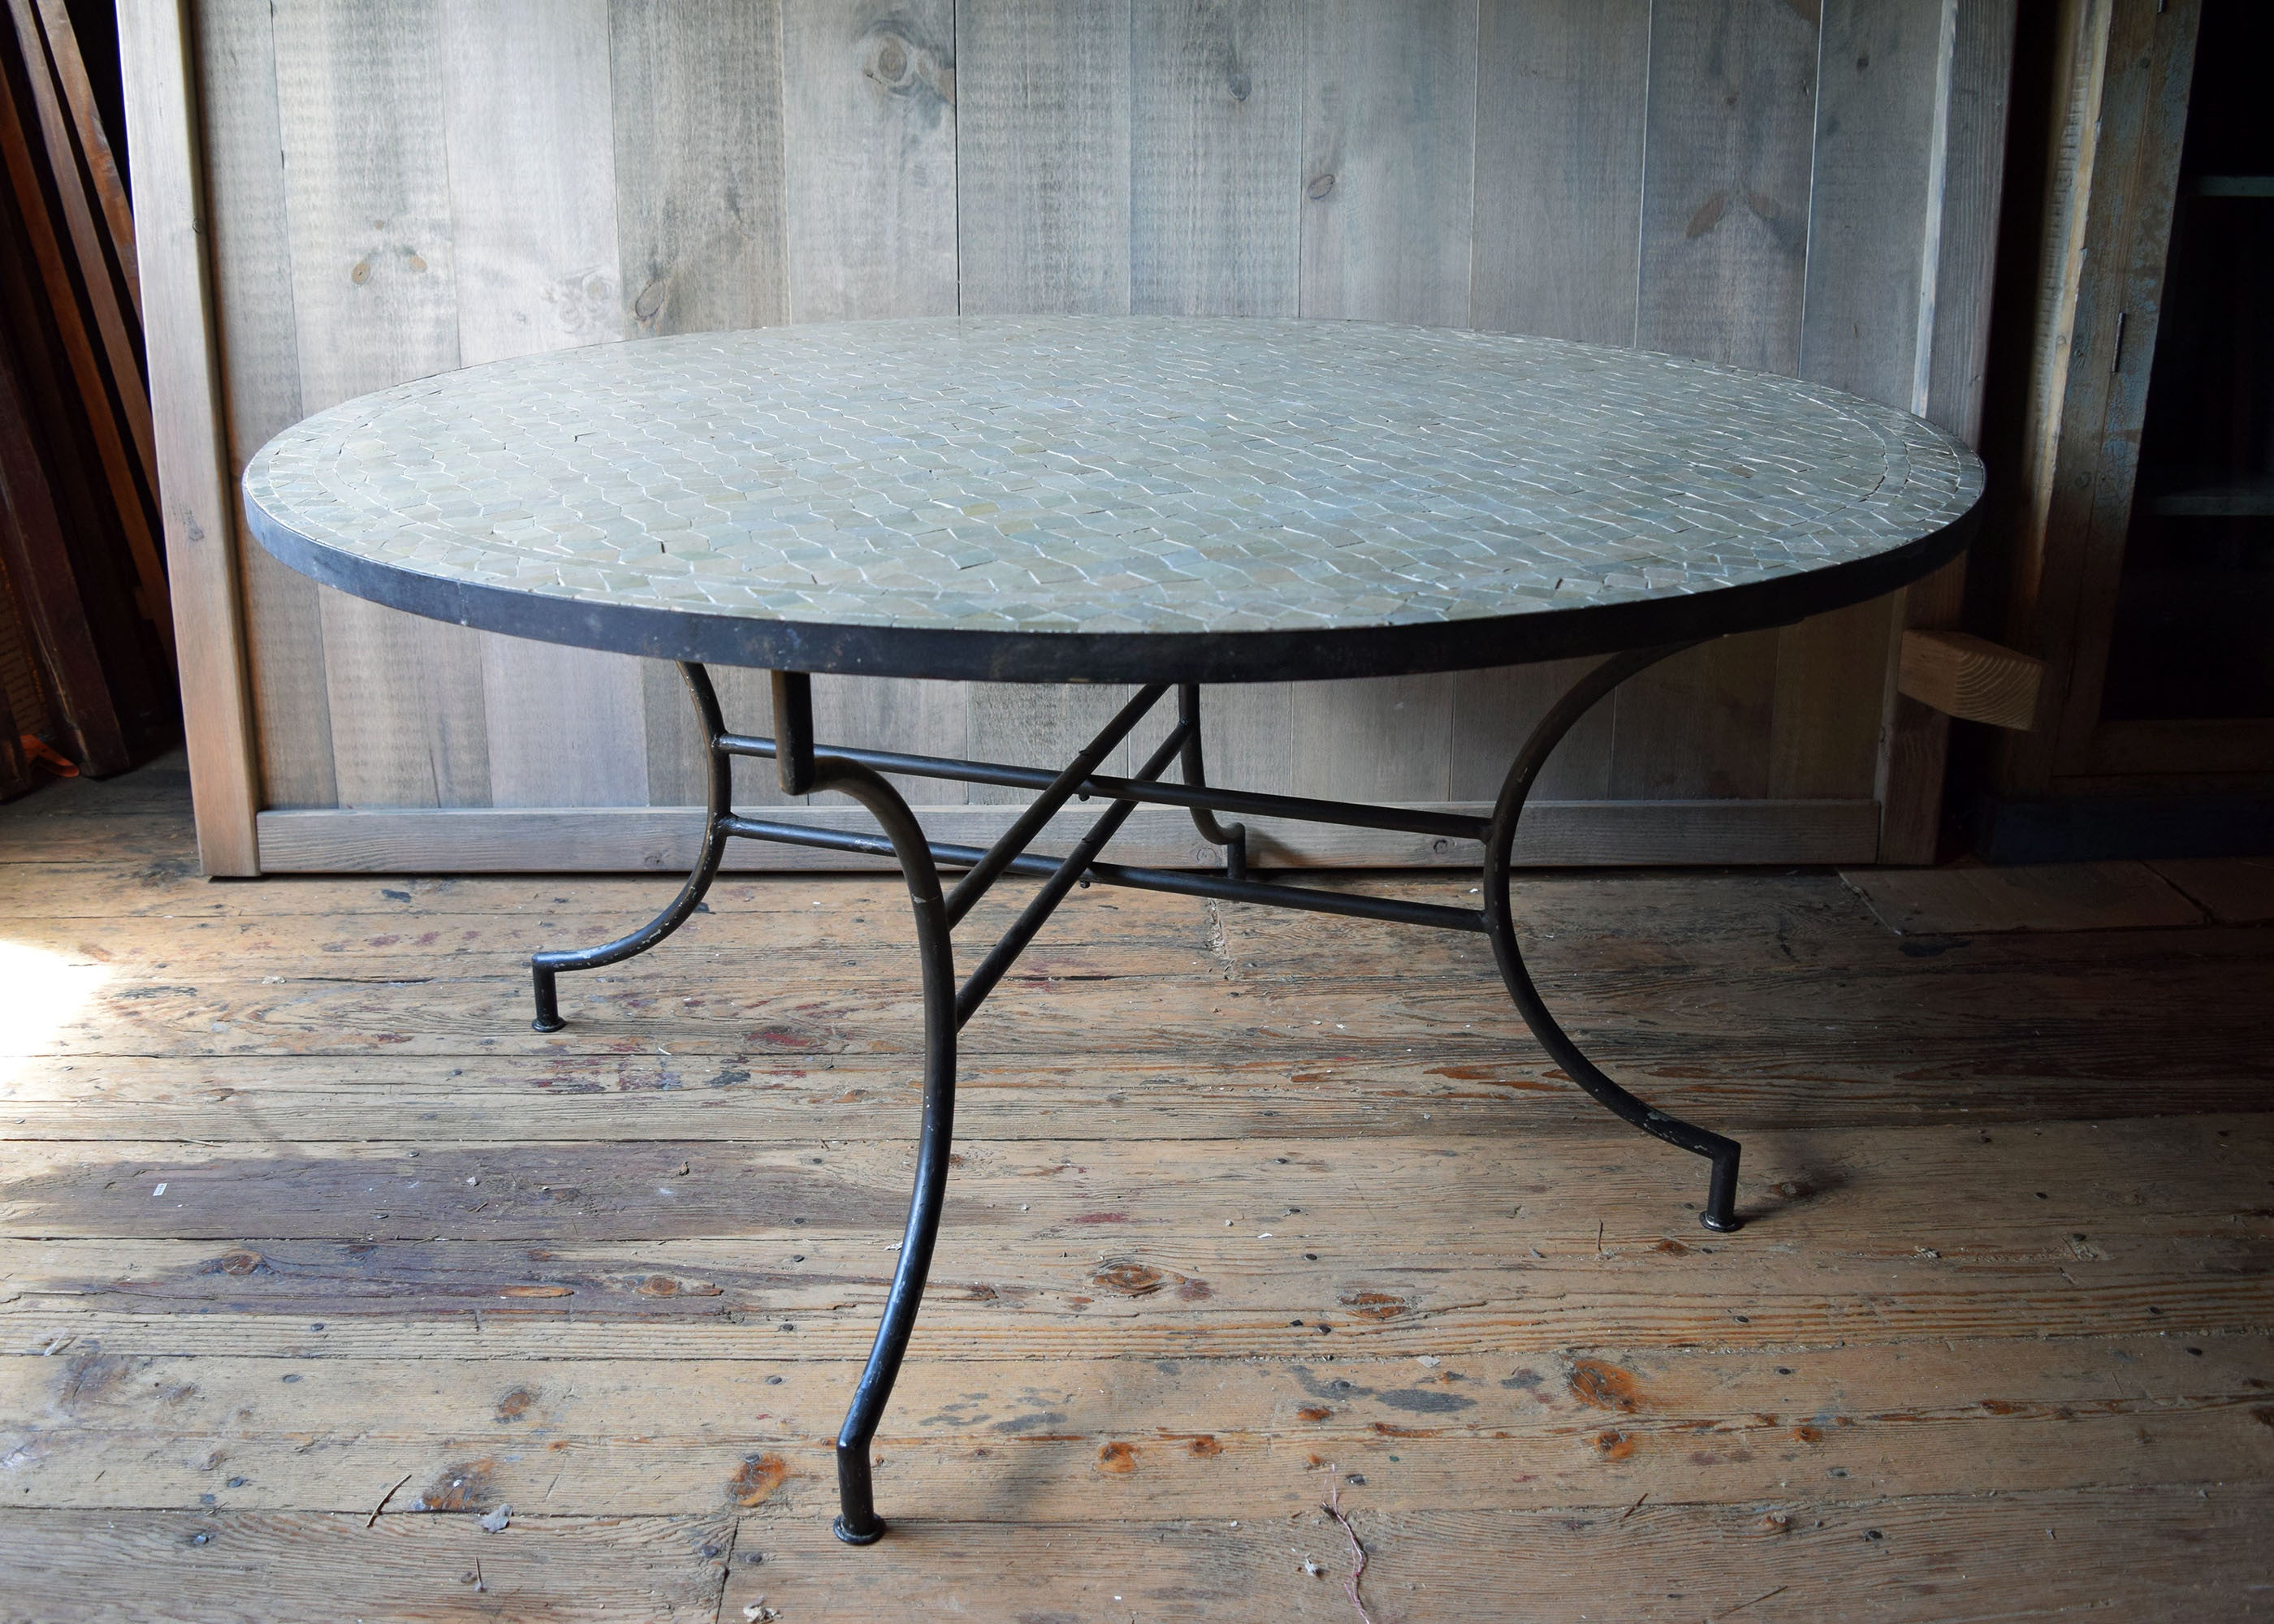 Round Moroccan Mosaic Tile Table